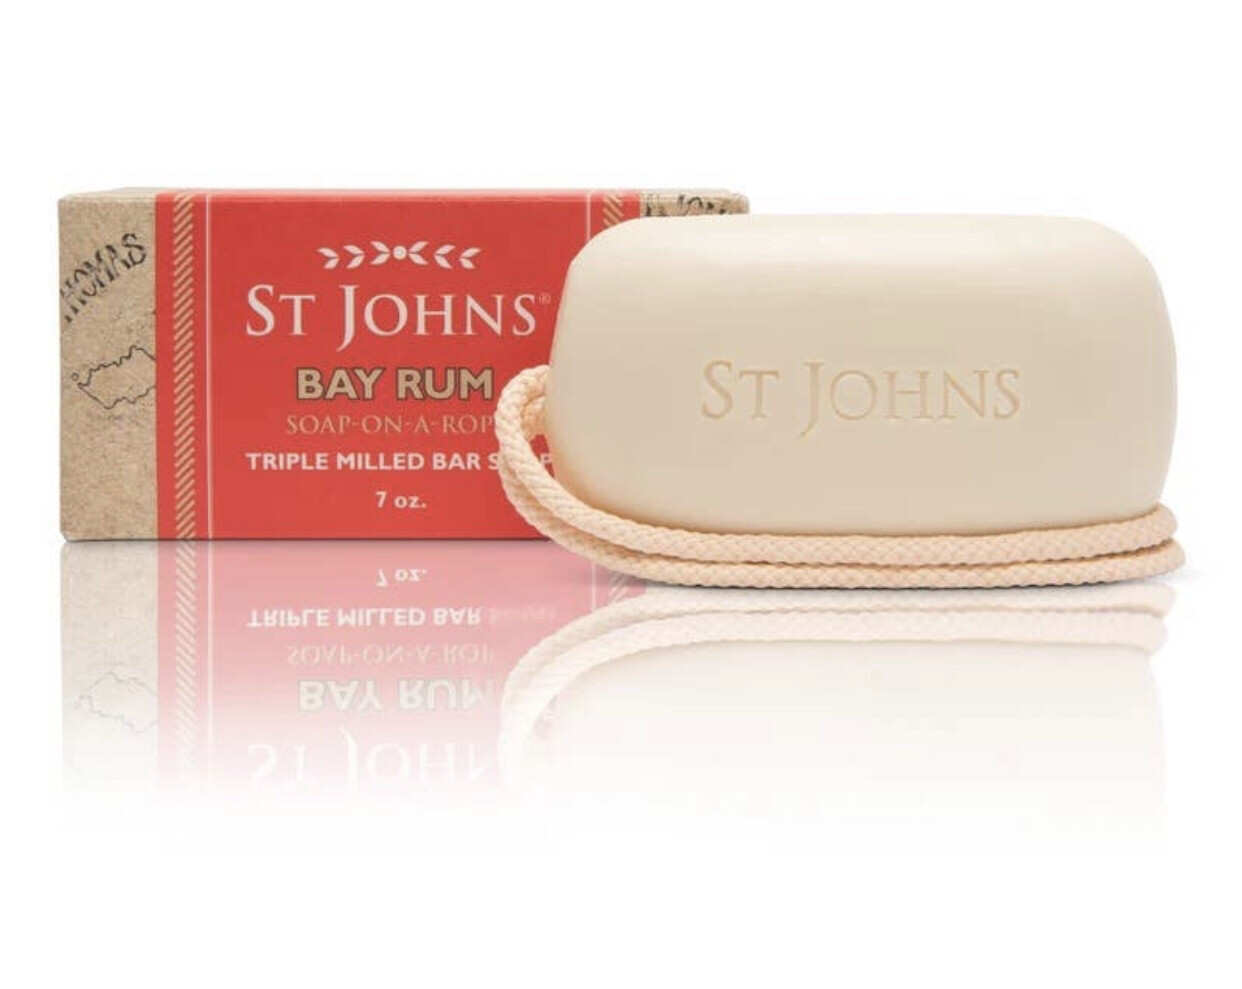 St Johns Bay Rum Soap on a Rope